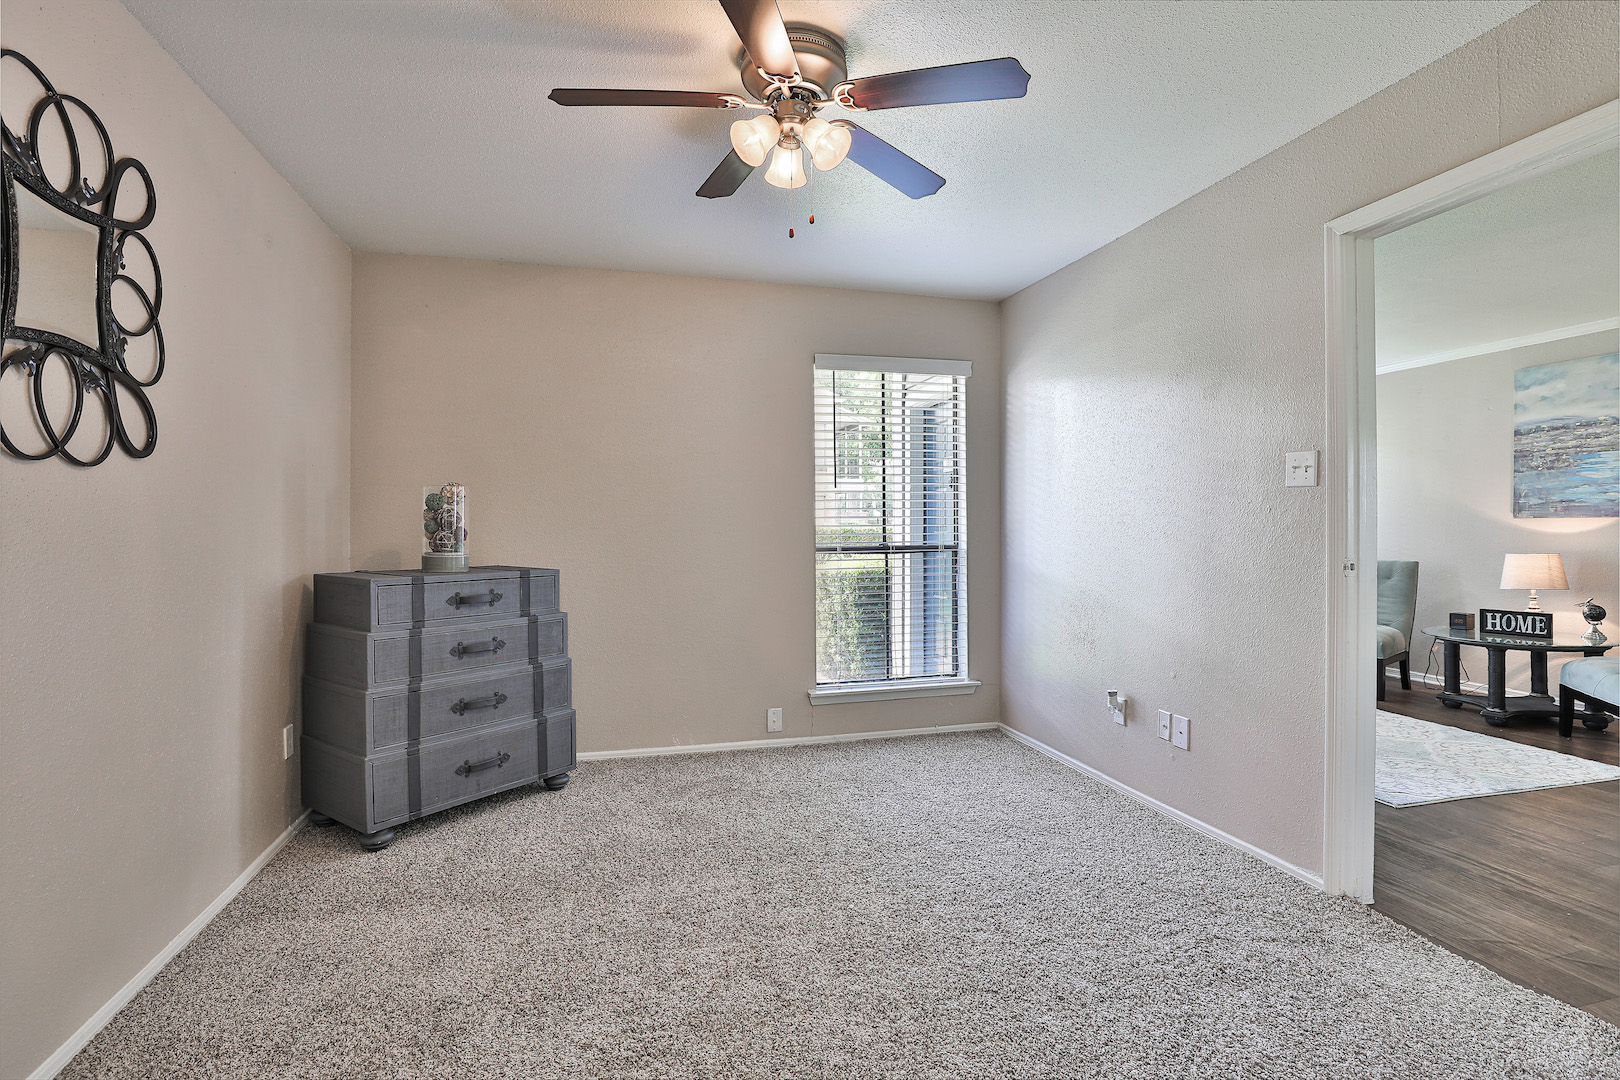 Ceiling Fans Available at Westmount at Summer Cove Apartments in Houston, TX